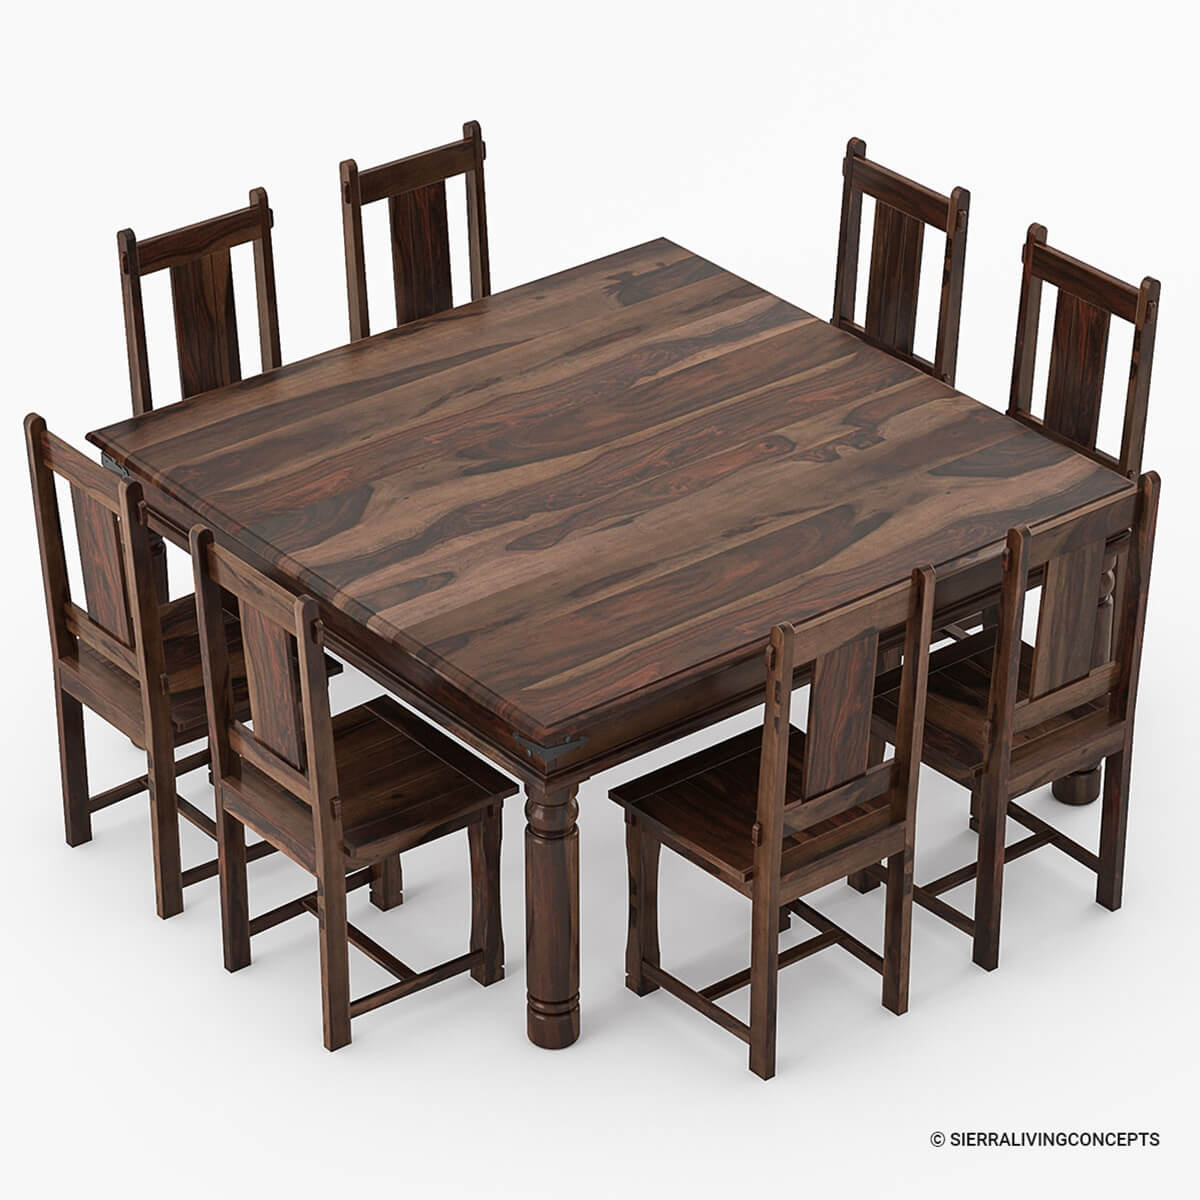 Richmond Rustic Solid Wood Large Square Dining Room Table  : 37171 from www.sierralivingconcepts.com size 1200 x 1200 jpeg 98kB